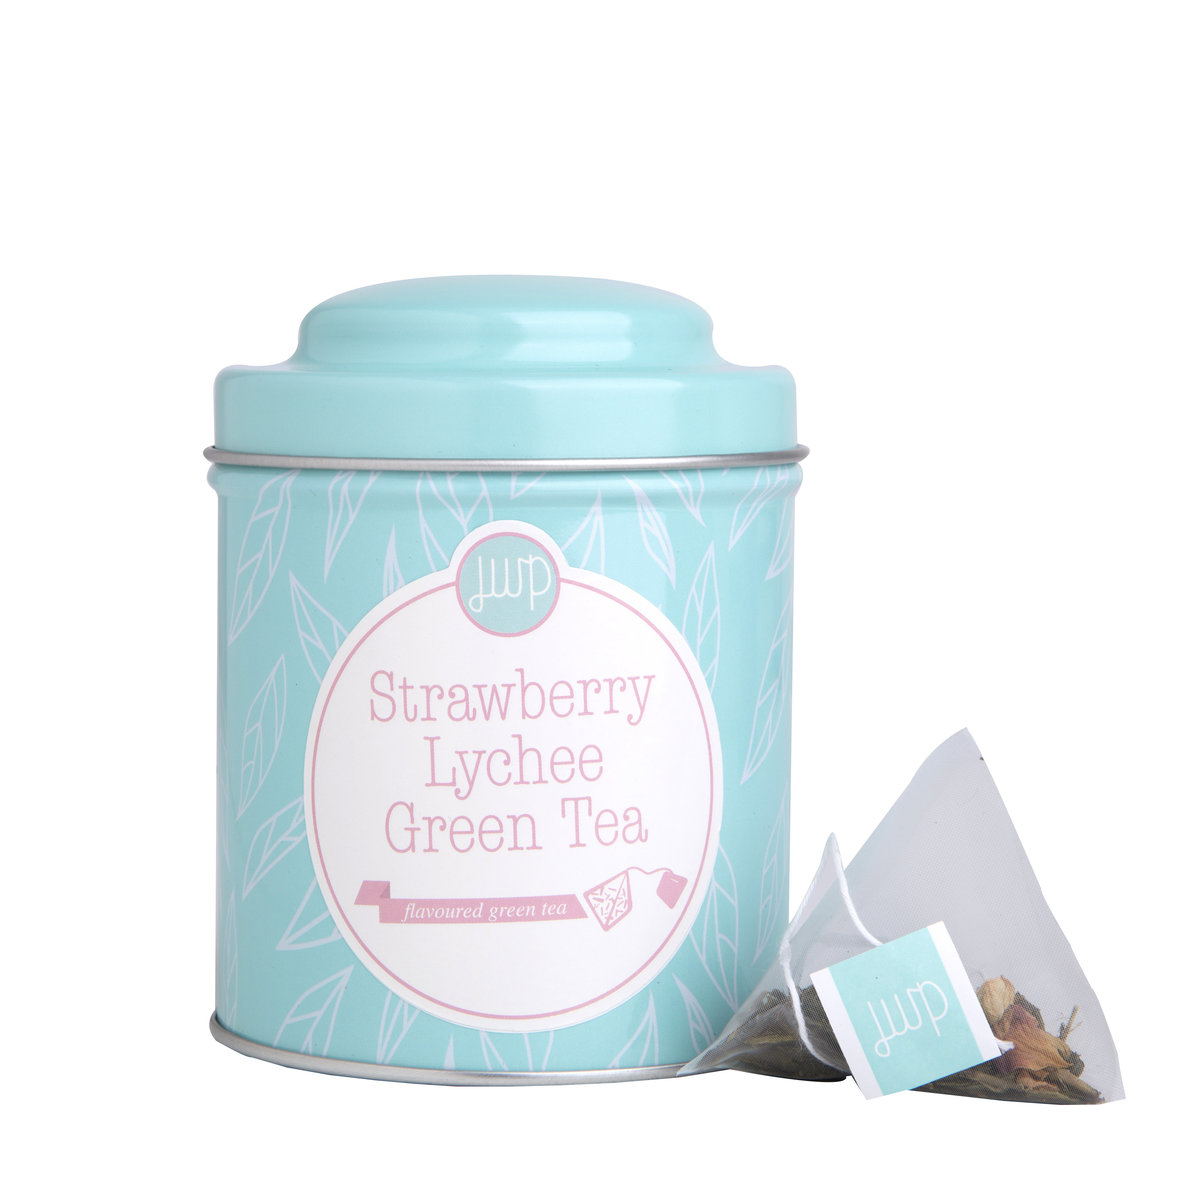 Strawberry Lychee Green Tea (10 teabags x 1 tin)